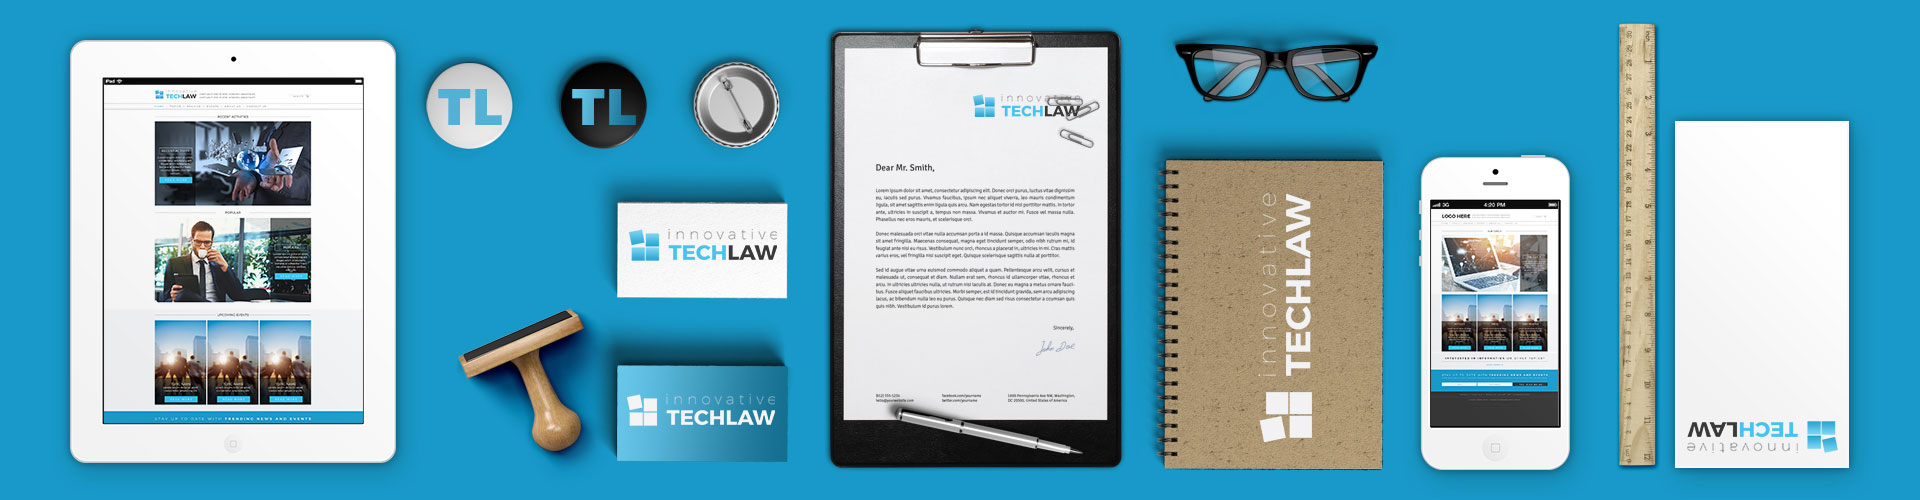 techlaw-img-banner